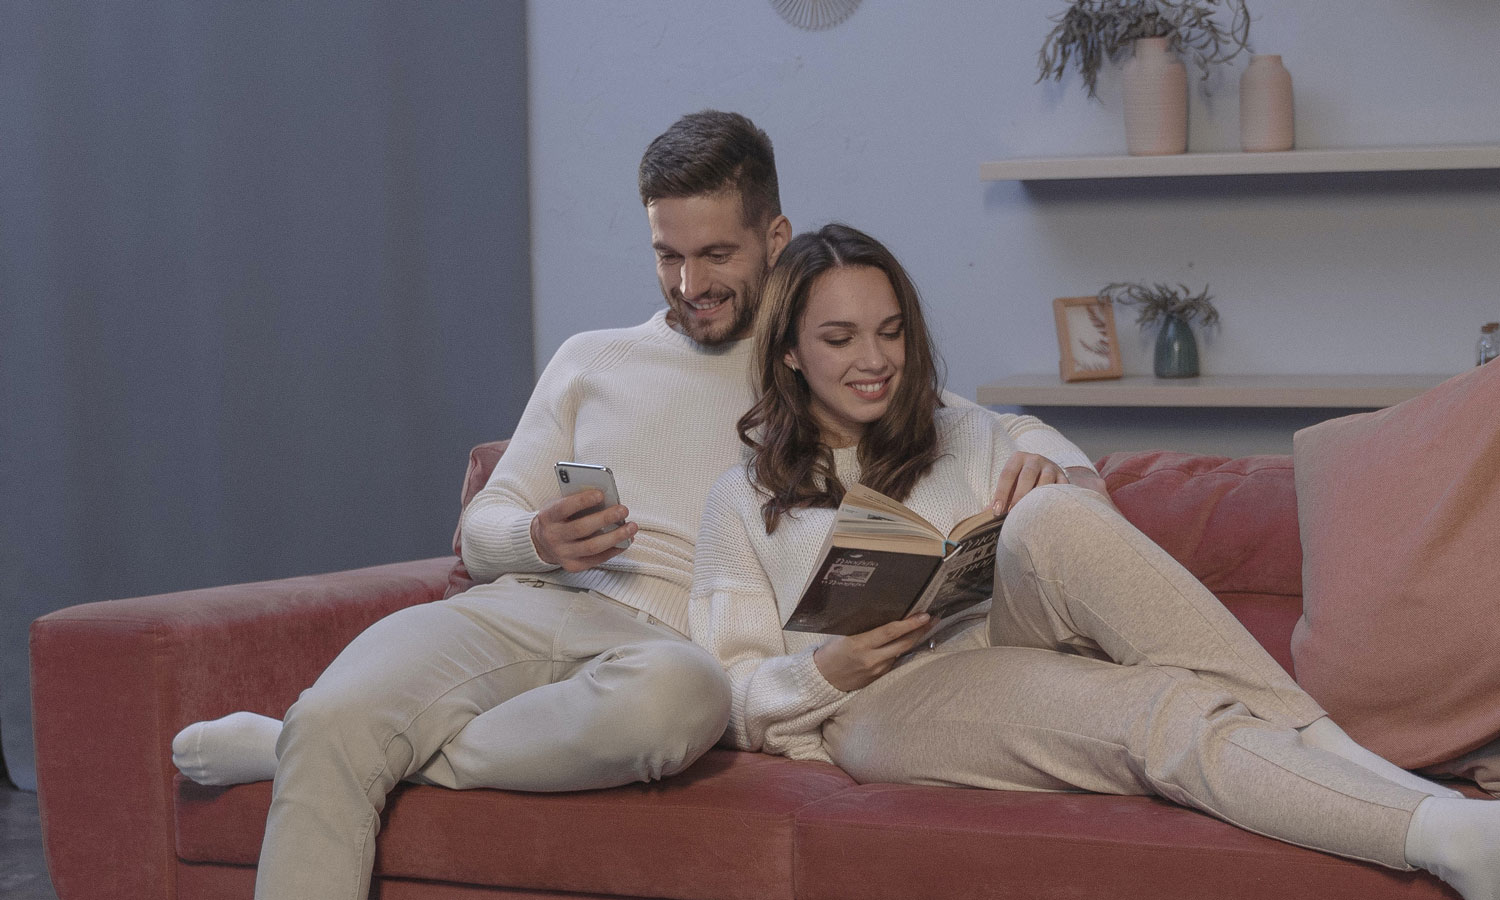 A couple on a couch, with